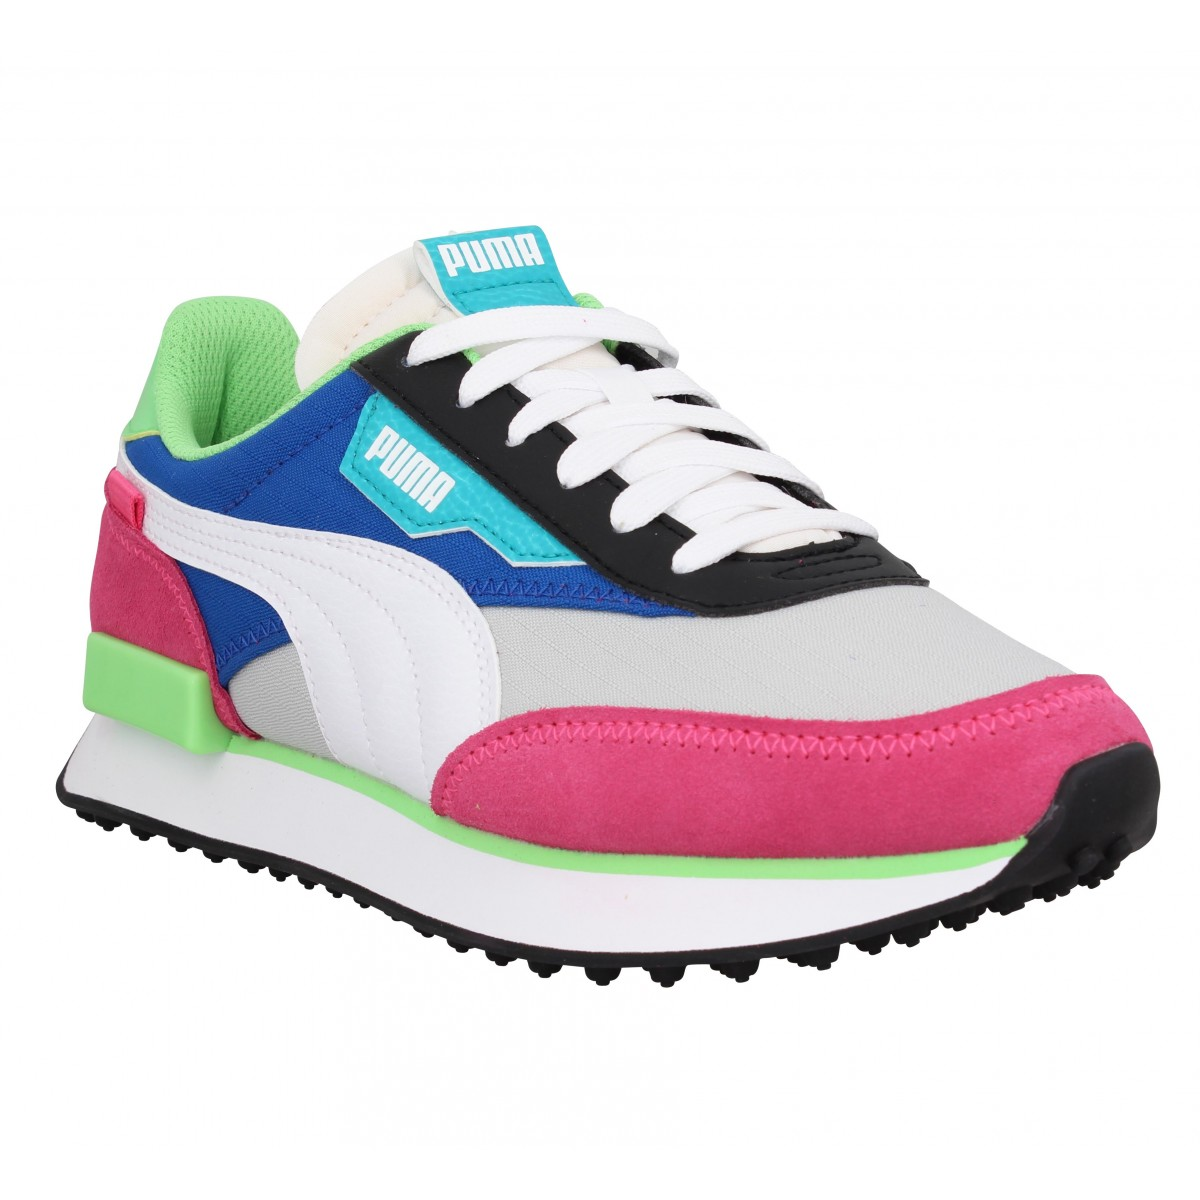 Baskets PUMA Future Rider Play On velours toile Femme Rose Vert